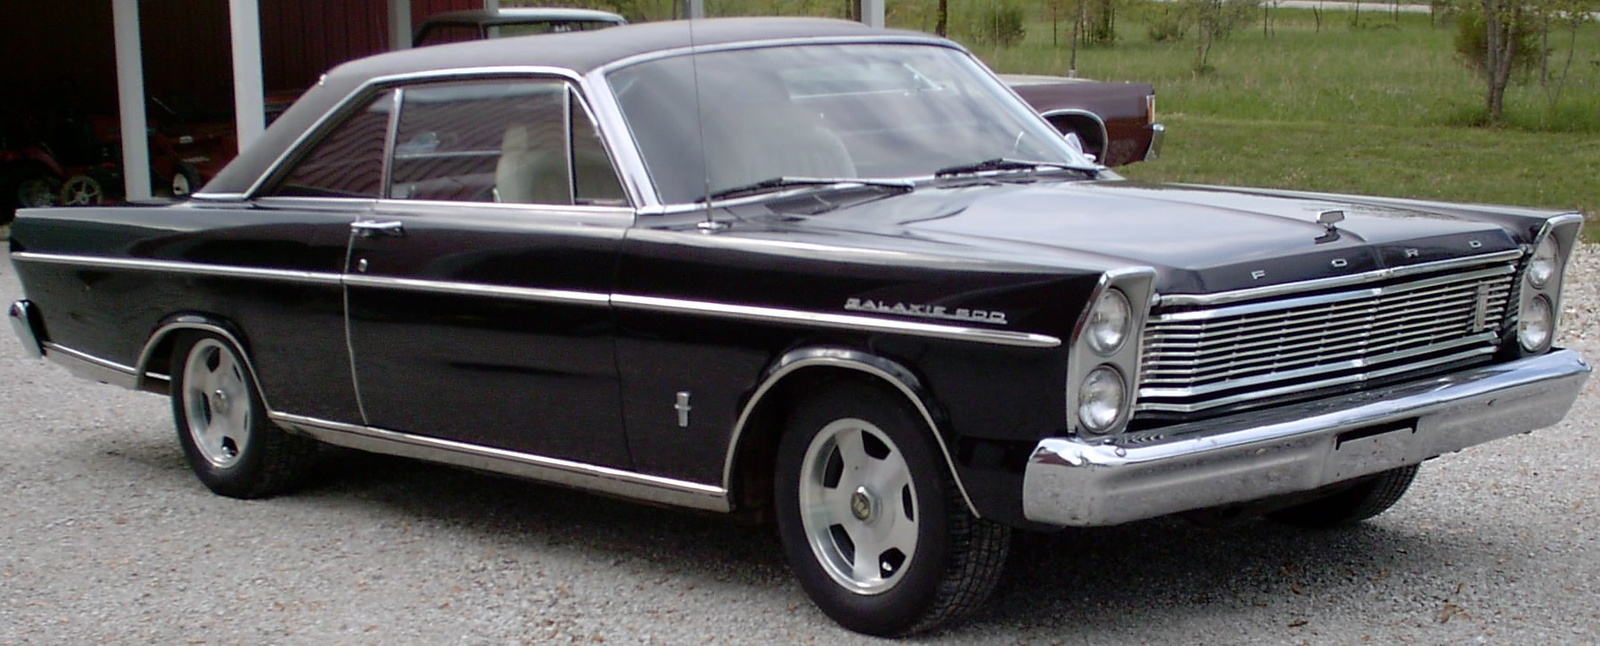 Ford Galaxie 1971 photo - 10